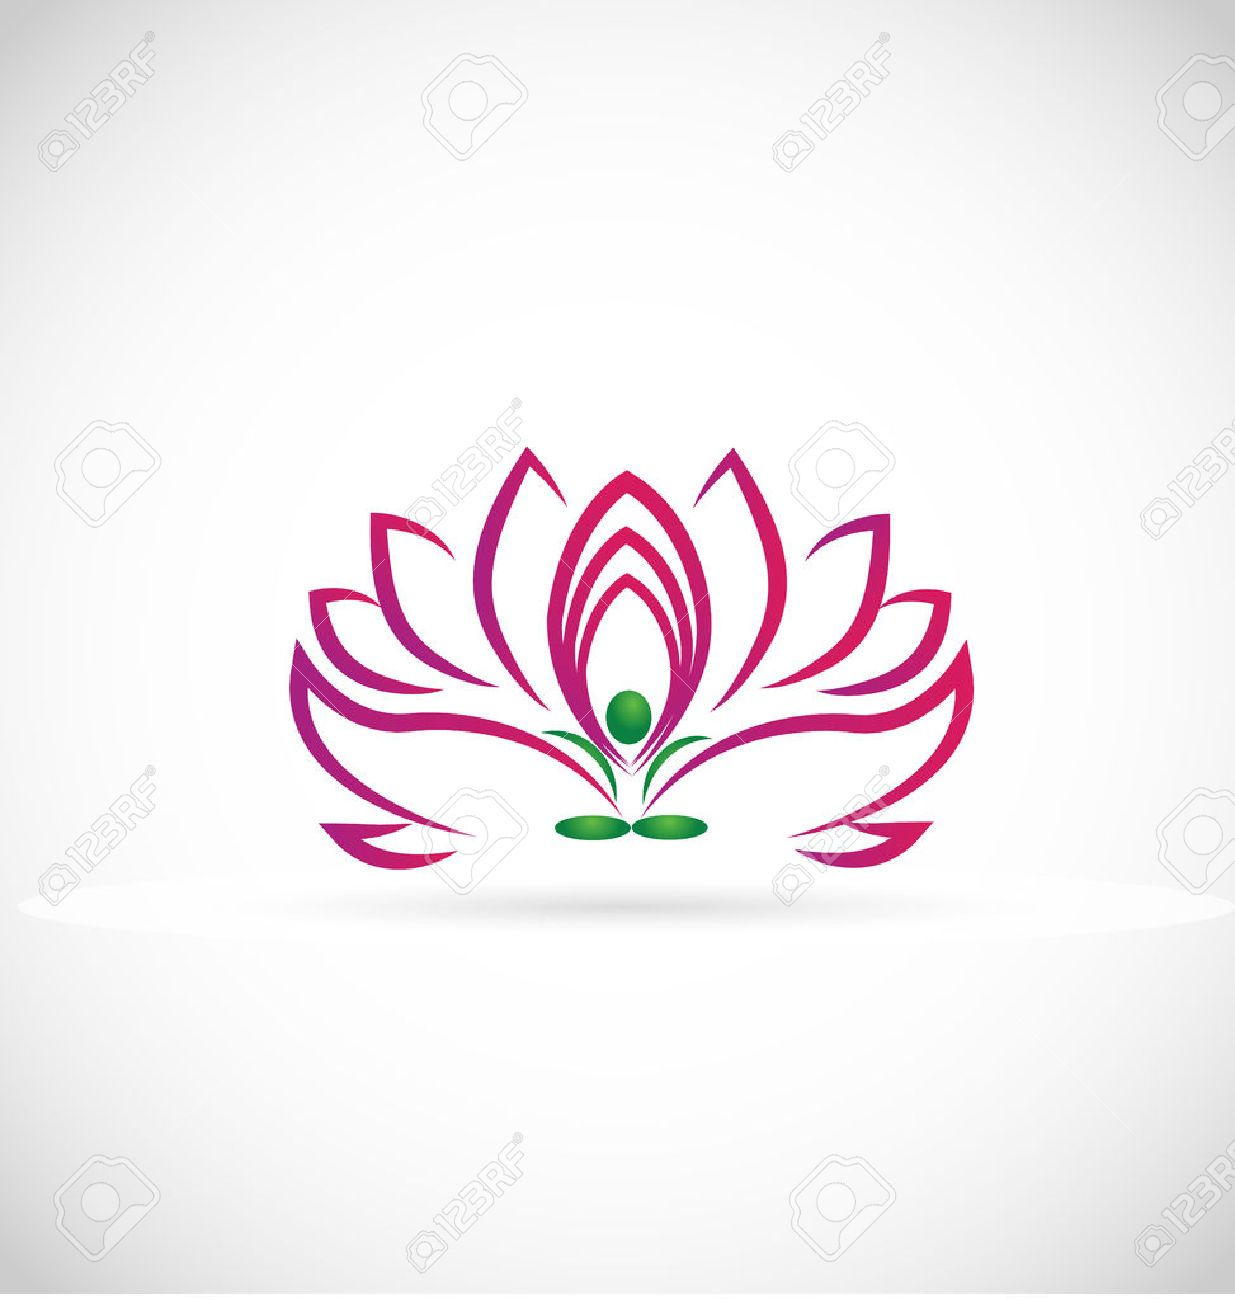 Yoga Man Lotus Flower Web Symbol Icon Vector Image Royalty Free Cliparts Vec